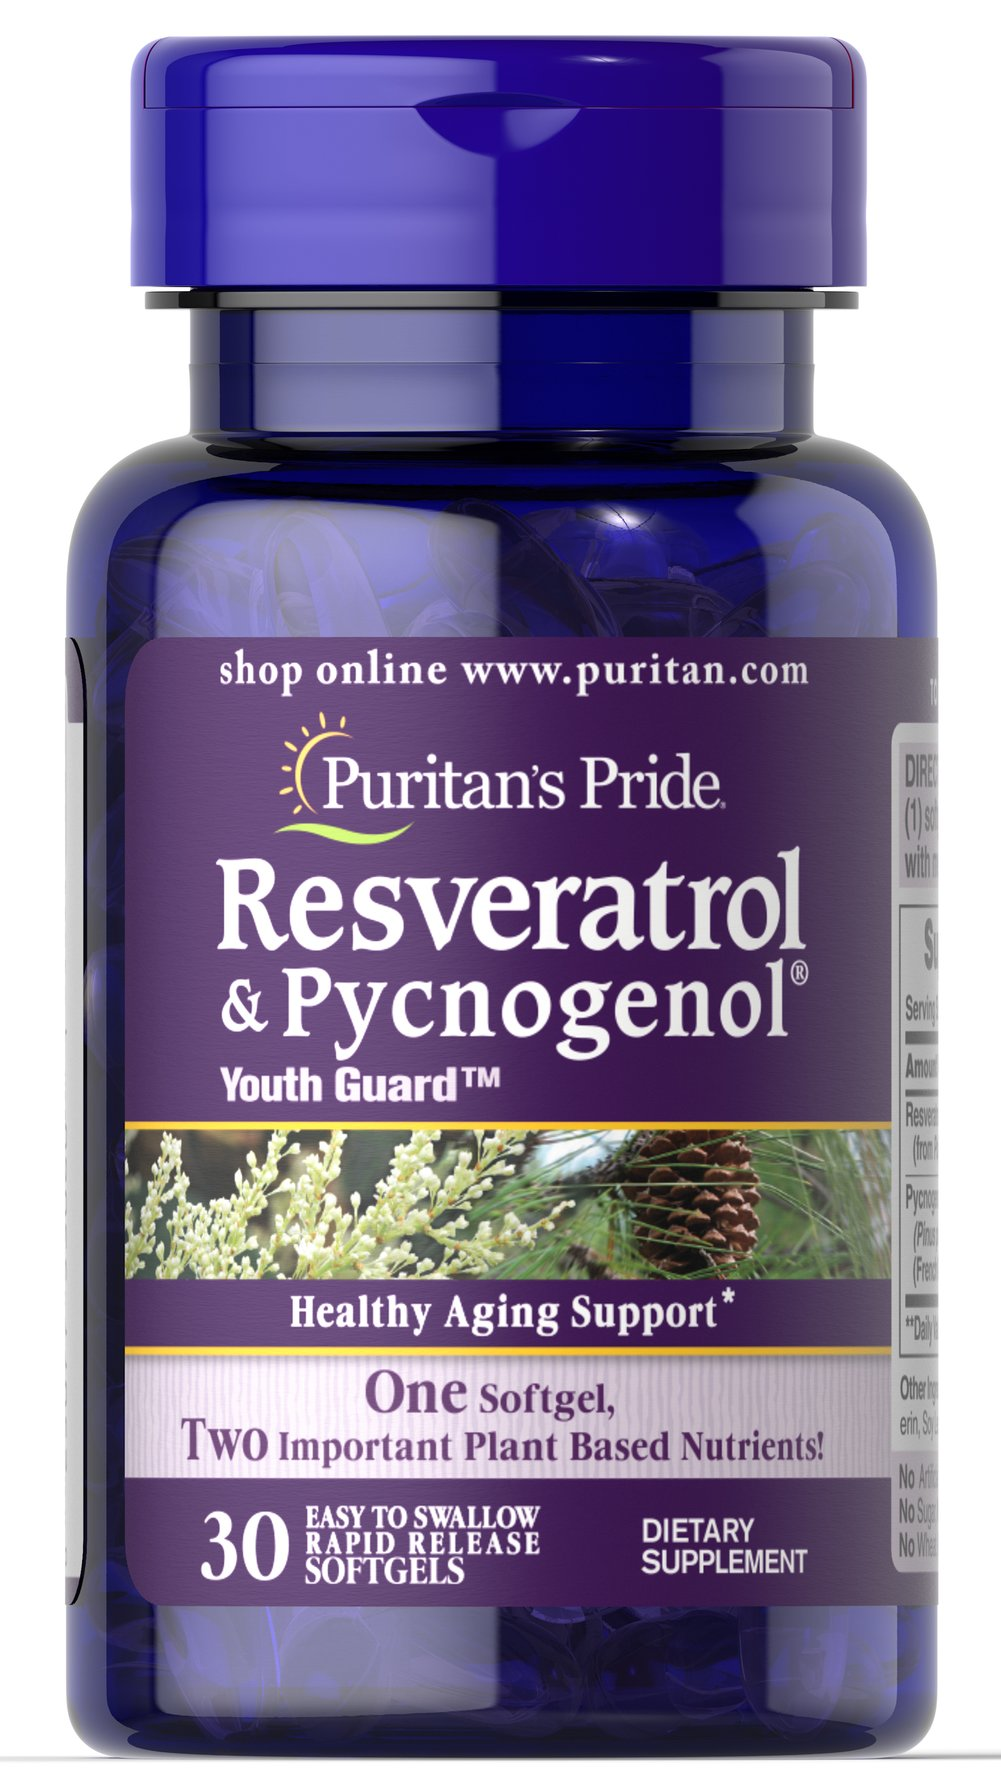 Resveratrol 100 mg & Pycnogenol® 30 mg <p></p><p>Double the strength of our regular Resveratrol supplement! Famous in Europe for its antioxidant properties, Resveratrol is now becoming widely known in America as a reliable way to help fight the oxidative stress caused by cell damaging free radicals.** Resveratrol is the beneficial ingredient found in red wine. Resveratrol supports heart health by supporting blood flow and vascular function.** </p><p>Pycnoge